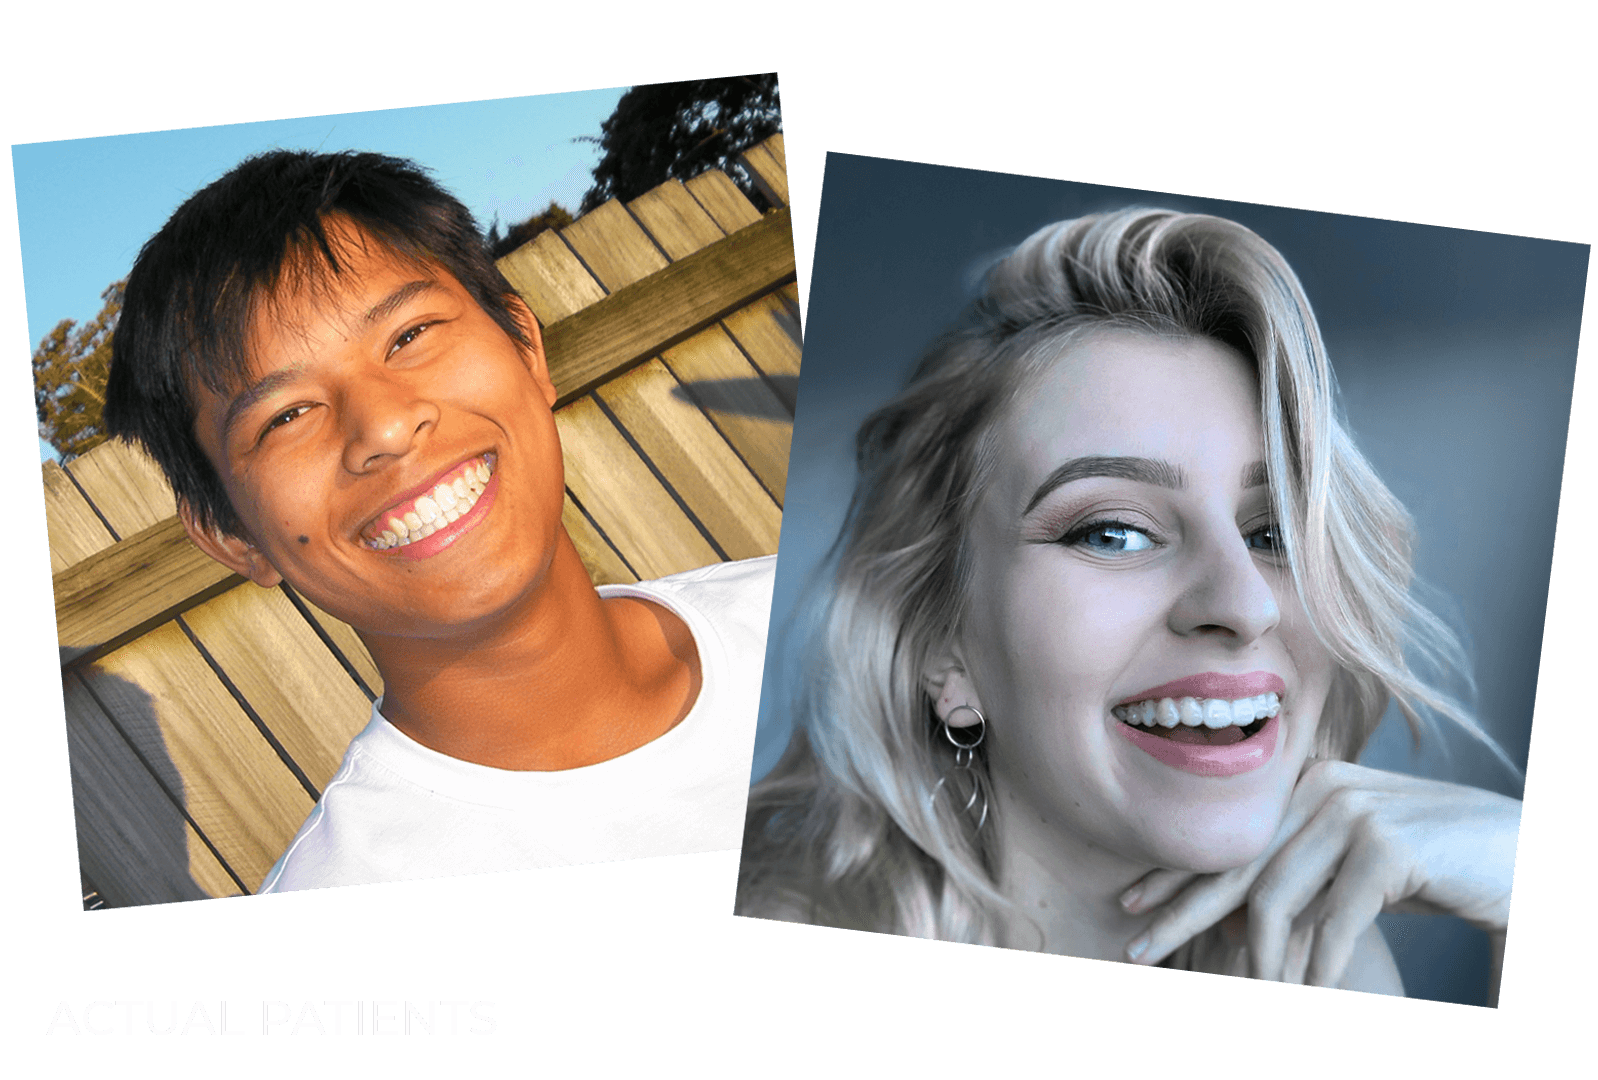 Images of teenage patients who have received dental services from Clear Smiles Orthodontics